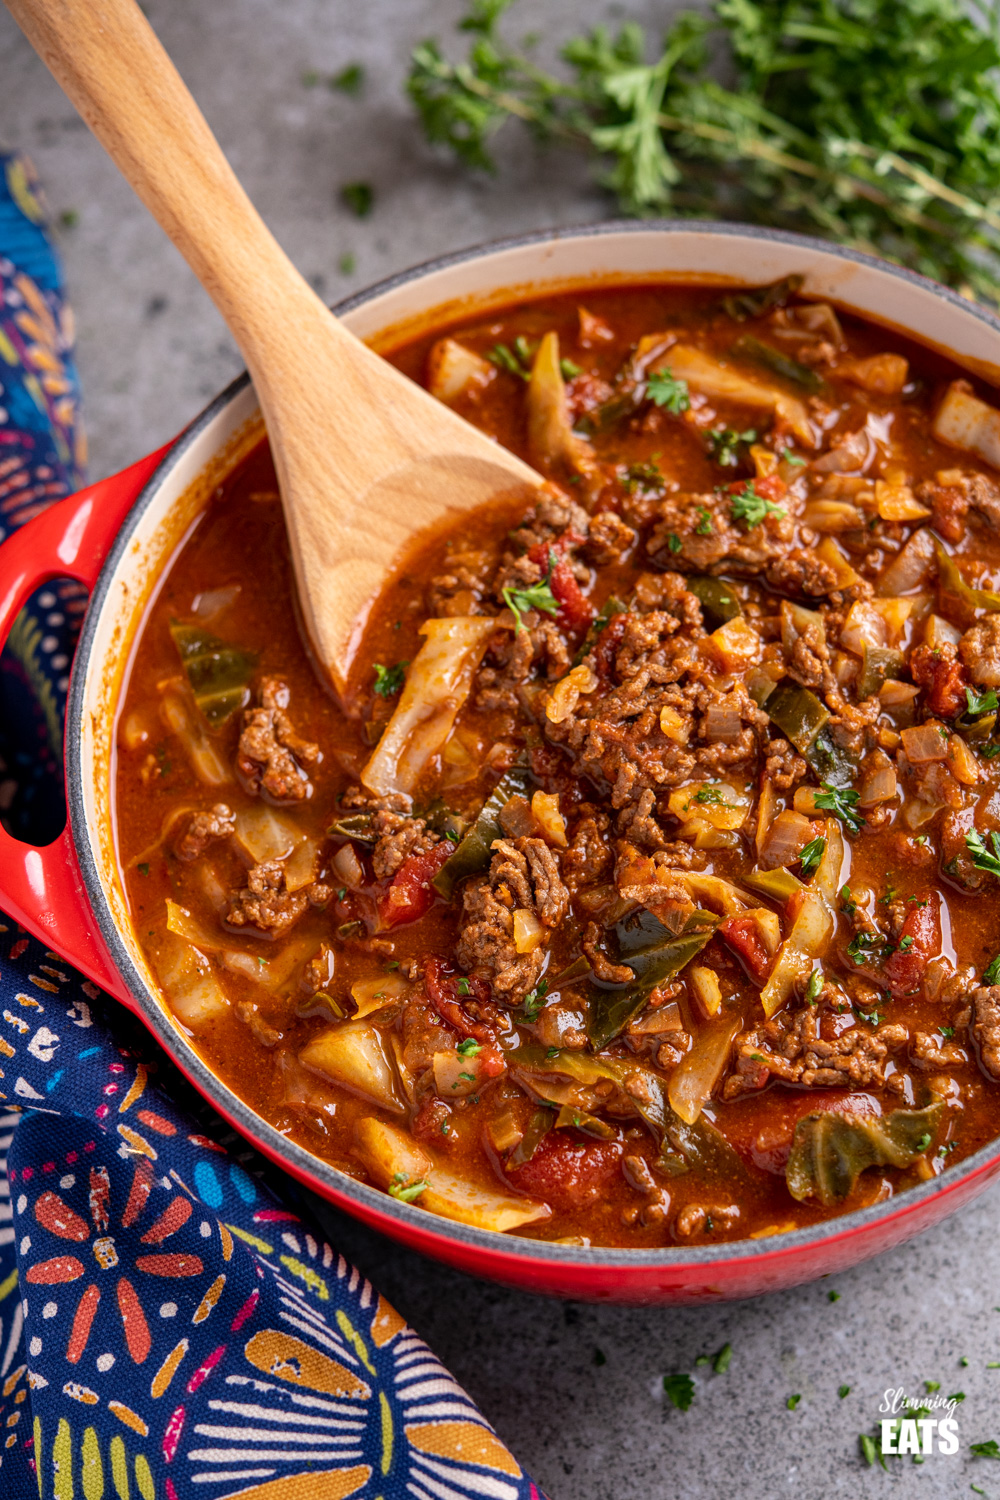 close up of Beef and Cabbage Soup in cerise le creuset casserole pan with wooden spoon